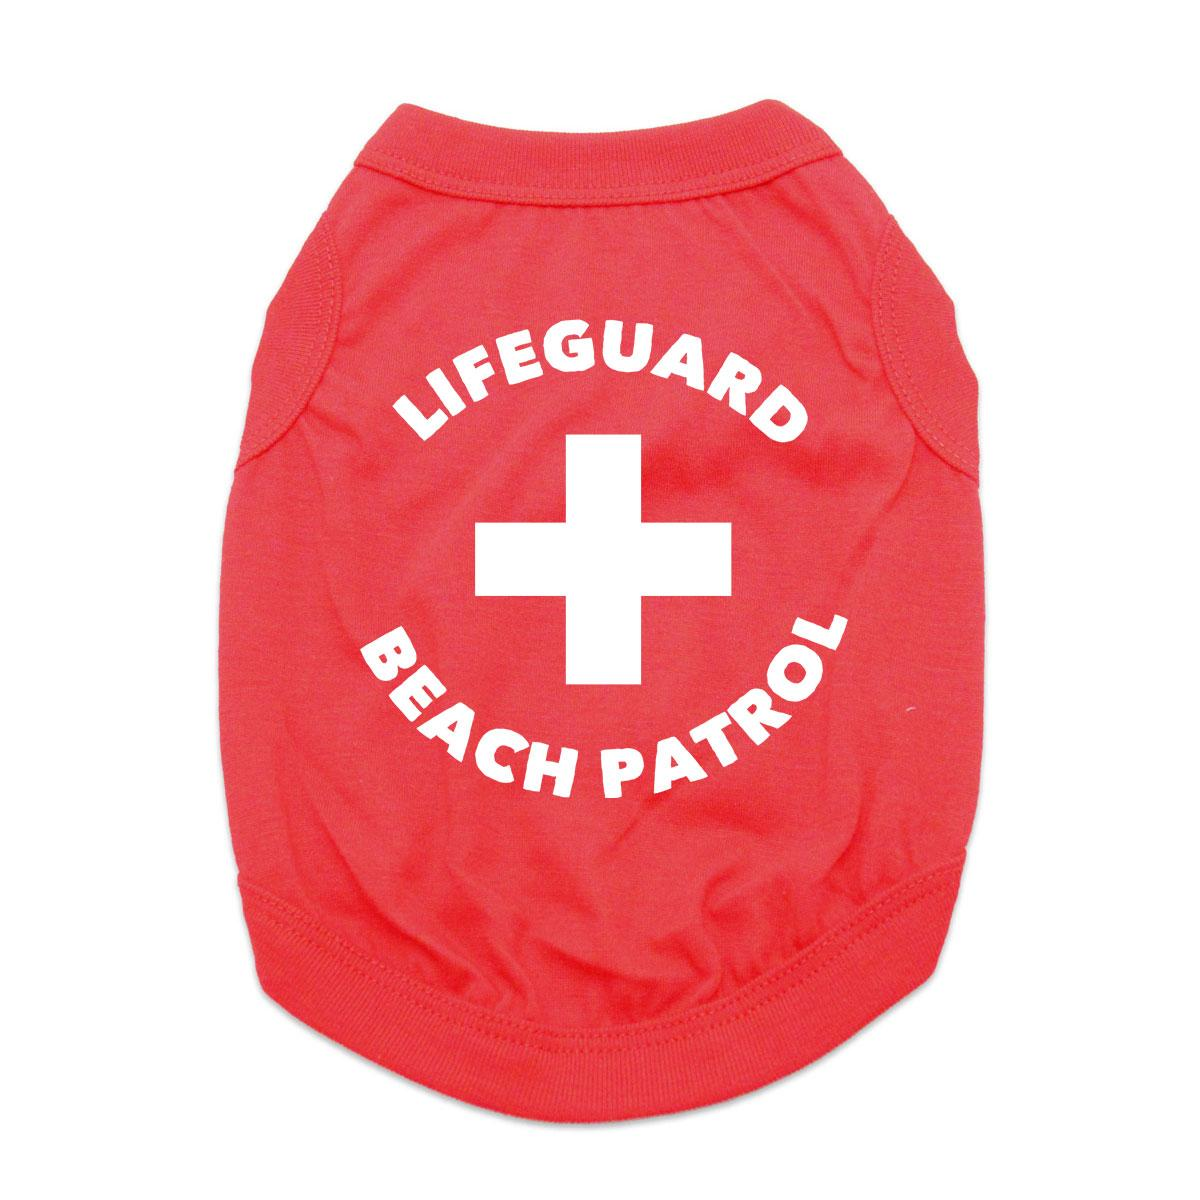 Lifeguard Beach Patrol Dog Shirt - Red